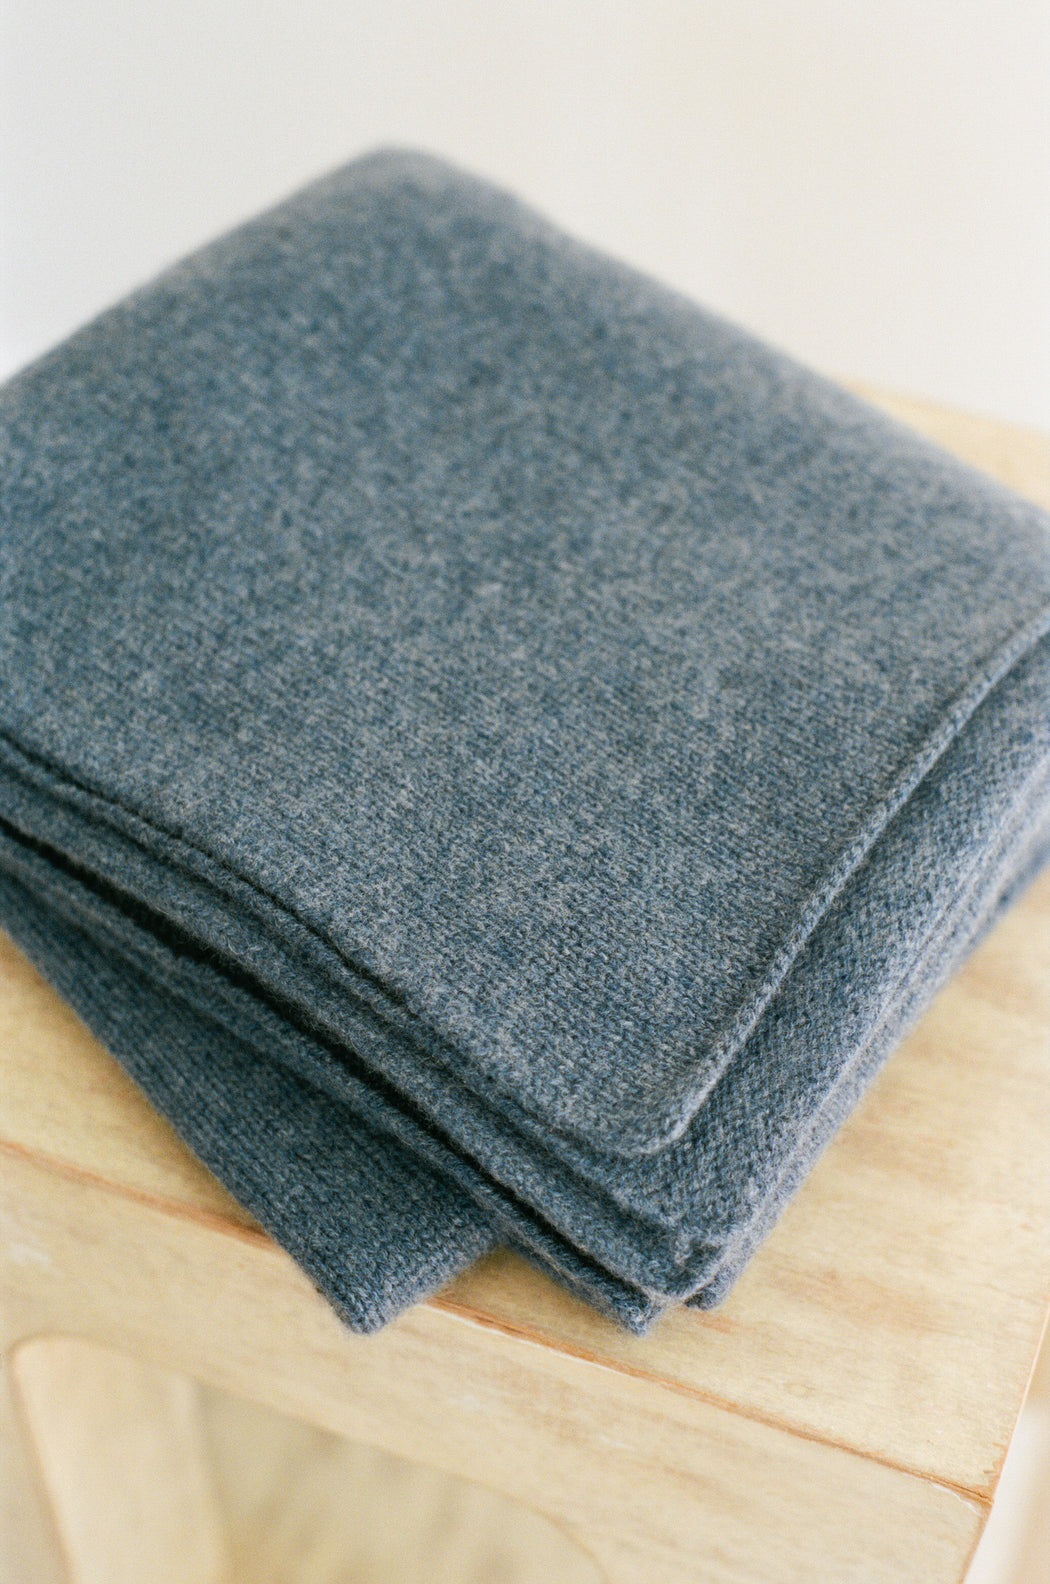 Italian Cashmere Jersey Knit Baby / Travel Blanket - Denim